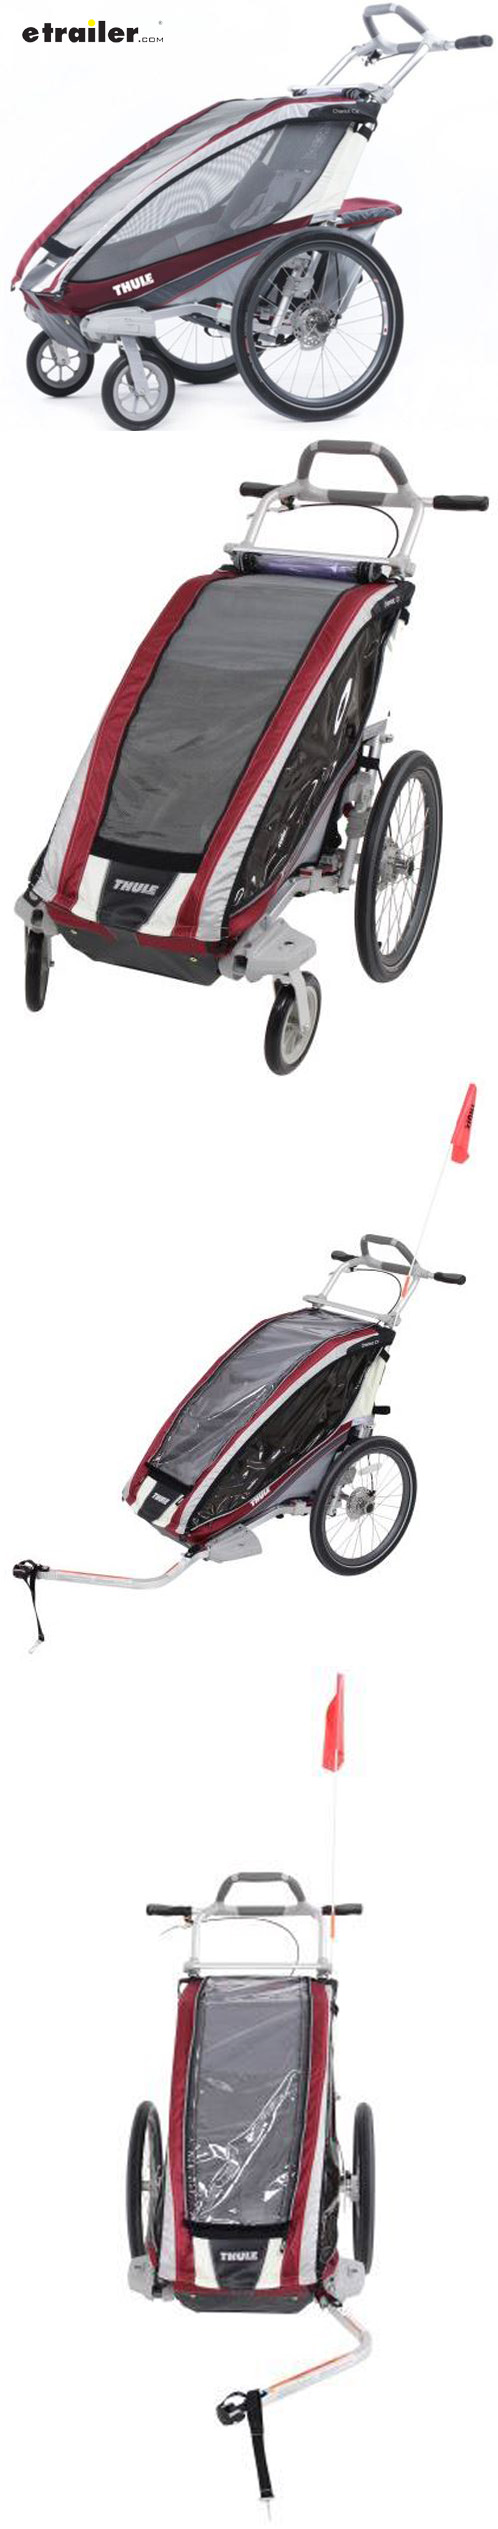 This bike trailer and stroller offers safety and comfort with features like disc hand brakes, ergonomic handlebar, and side window venting. Built-in brackets make it easy to store conversion kits (sold separately) for jogging or hiking and skiing.